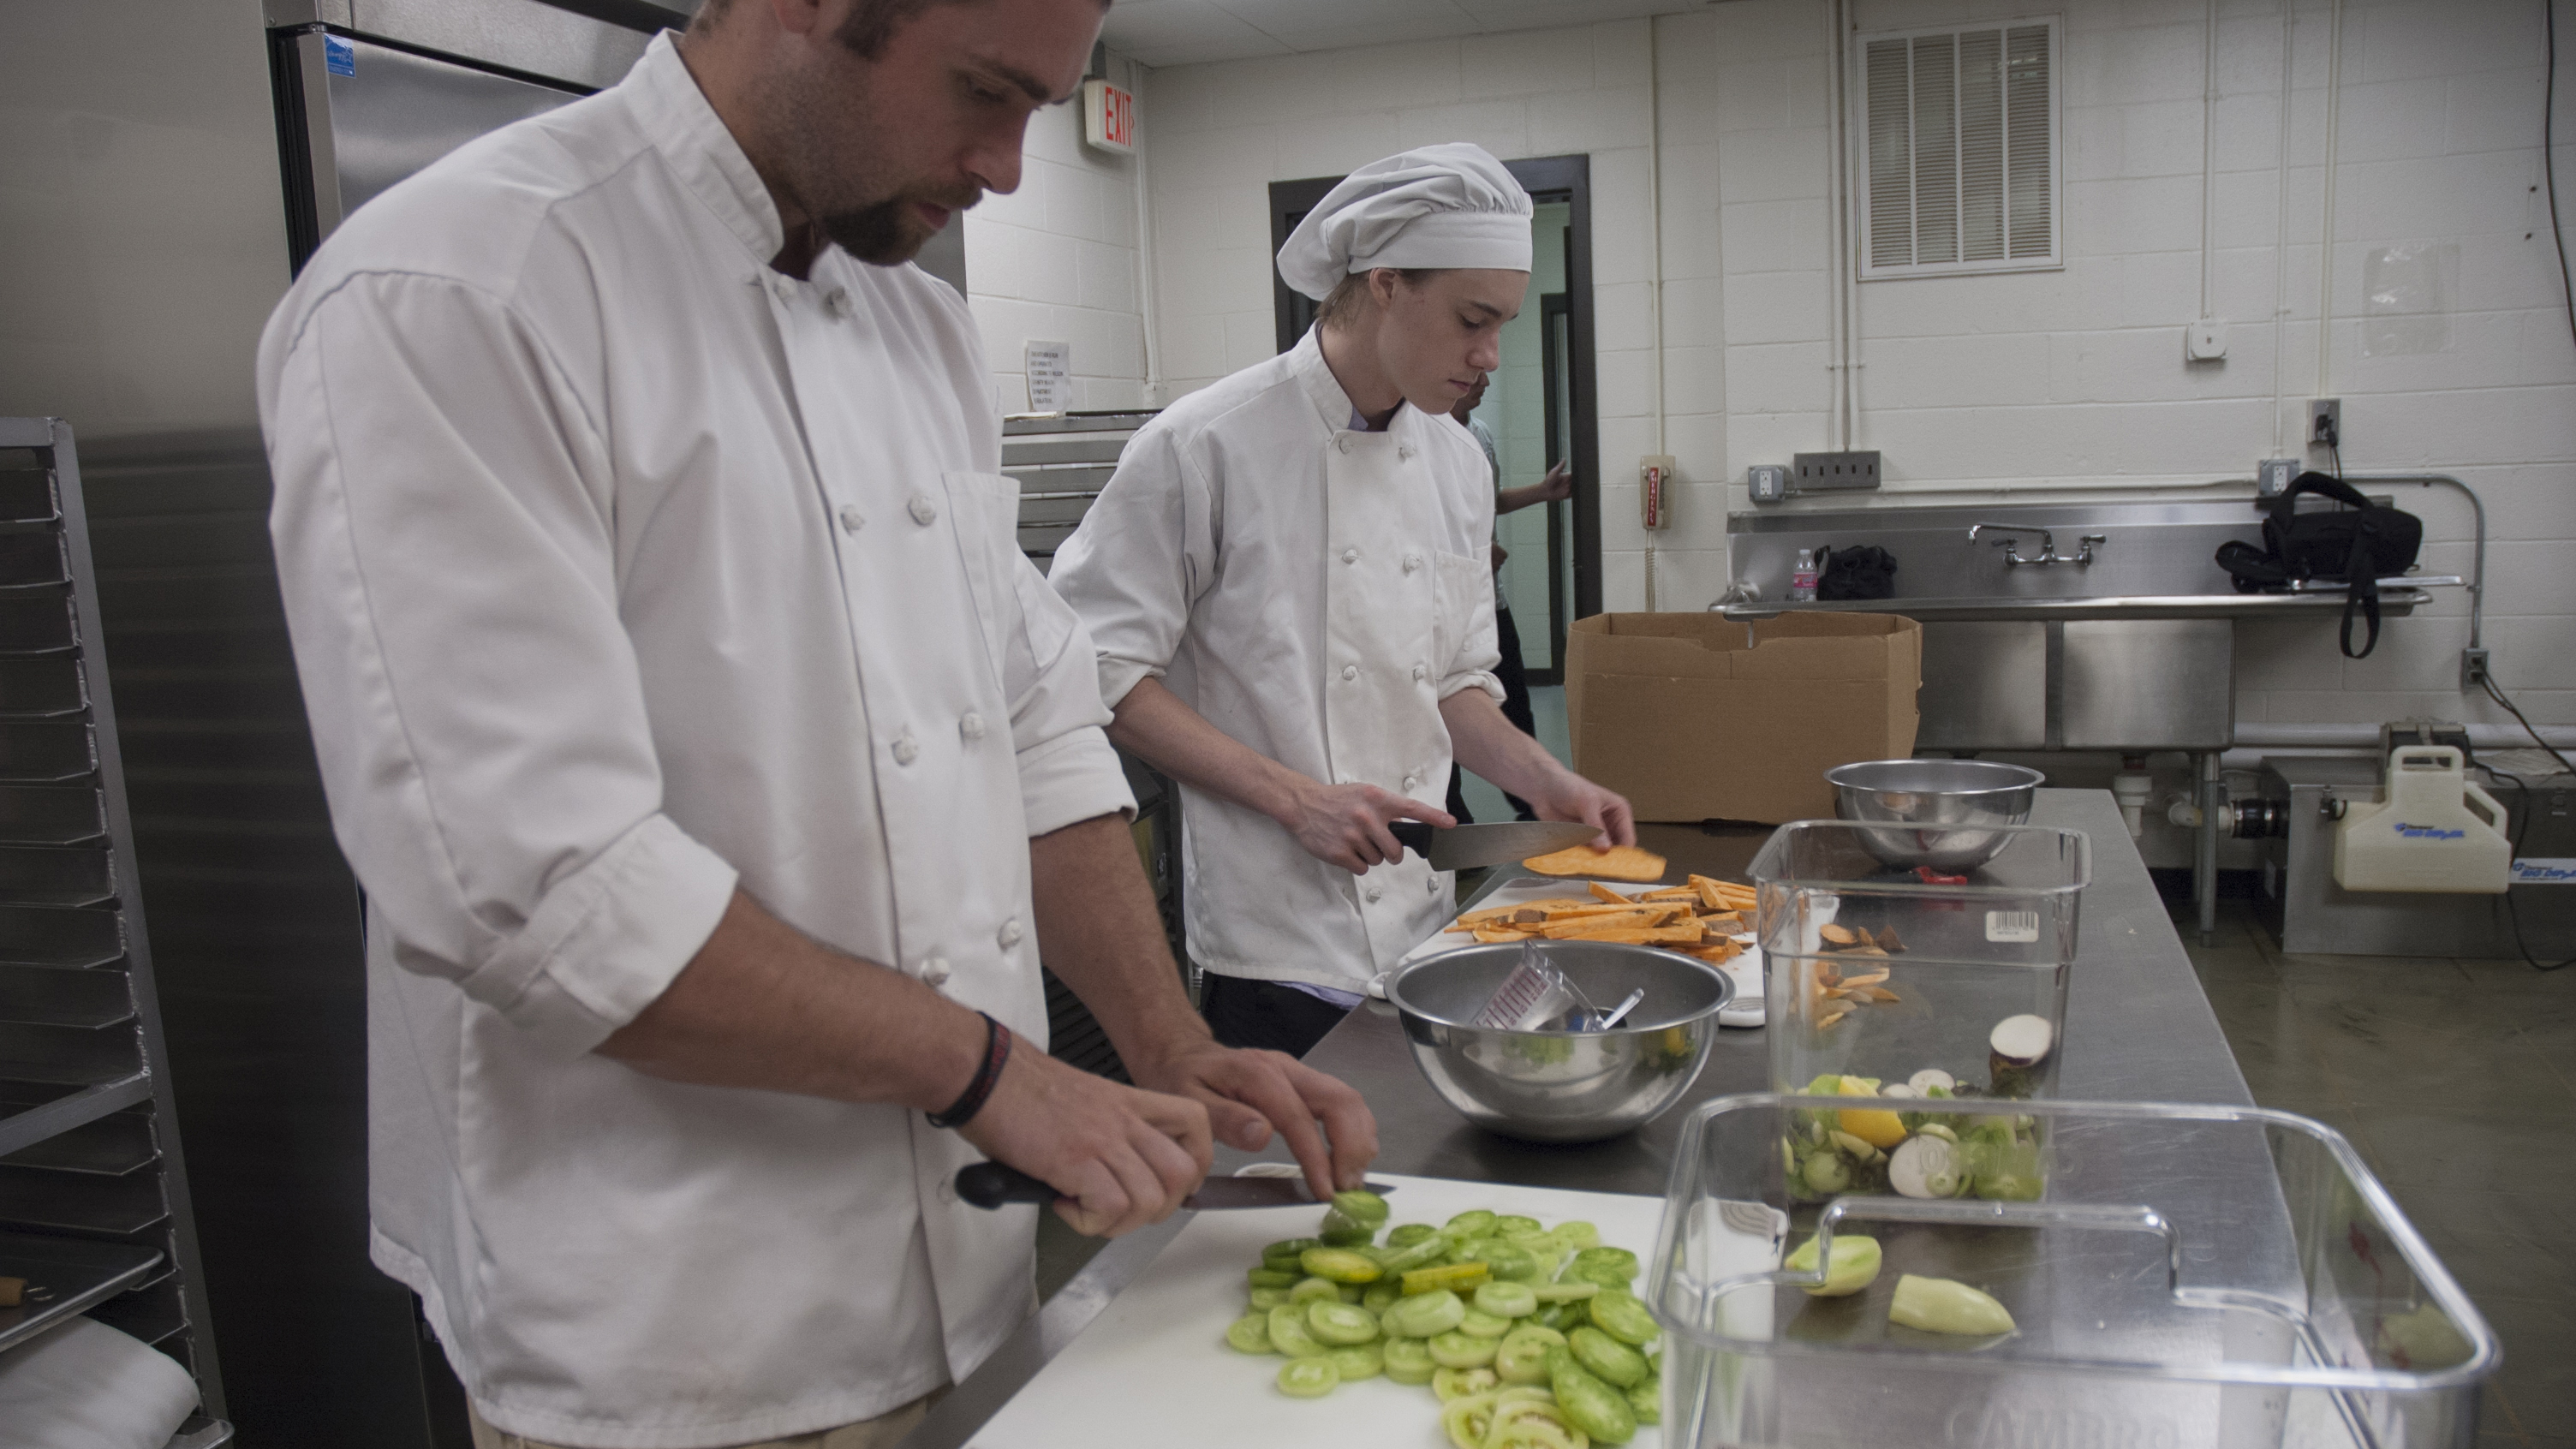 Students cutting produce.